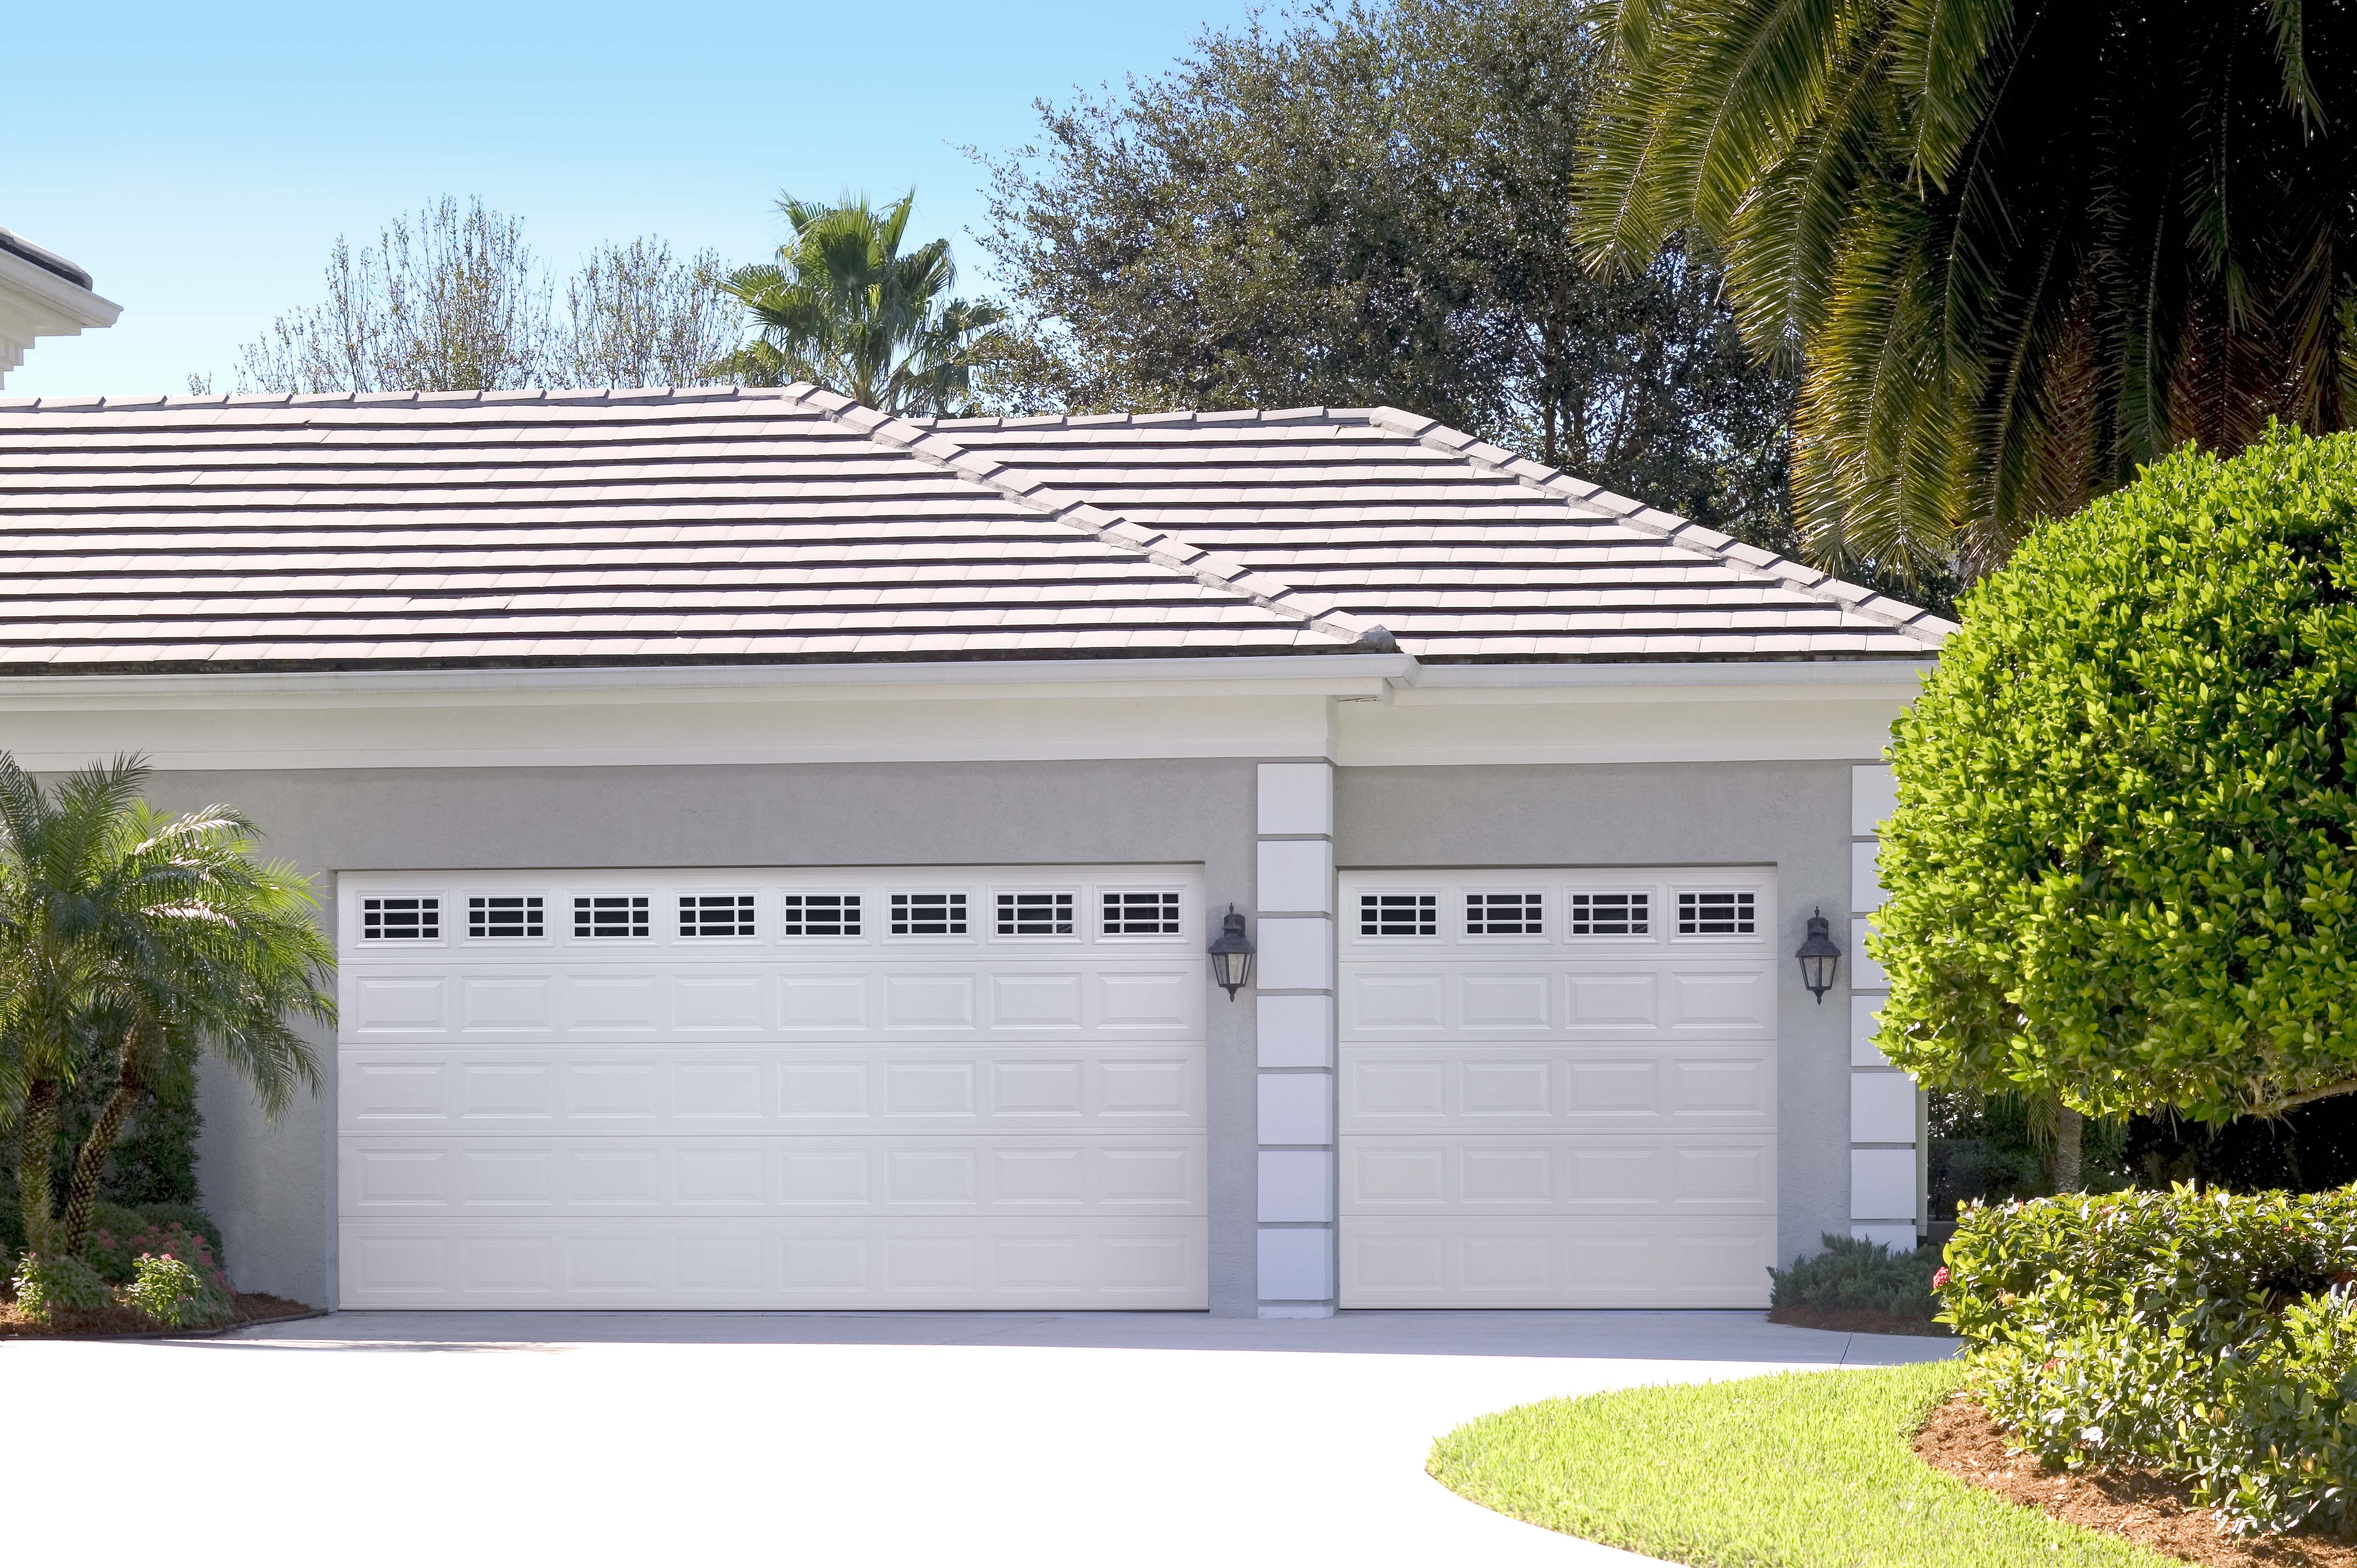 Classica northampton garage door white 9 x 8 no windows - 14 Best Amarr Traditional Steel Garage Doors Images On Pinterest Steel Garage Wood Garage Doors And Residential Garage Doors